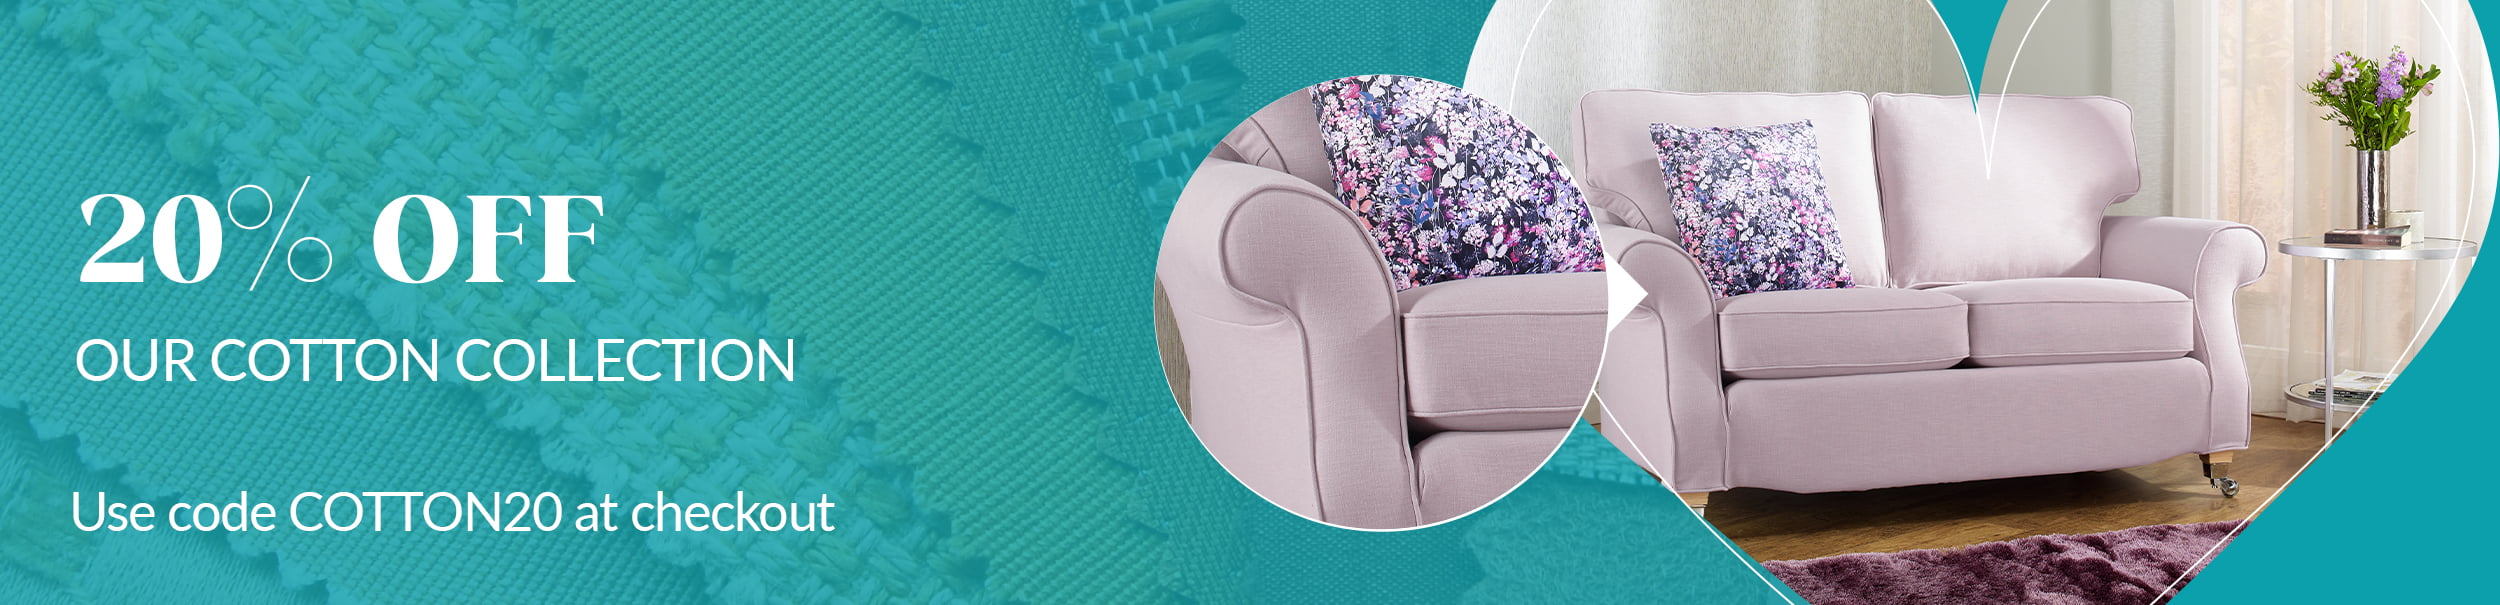 20% off our Cotton Collection for luxury sofa and chair covers